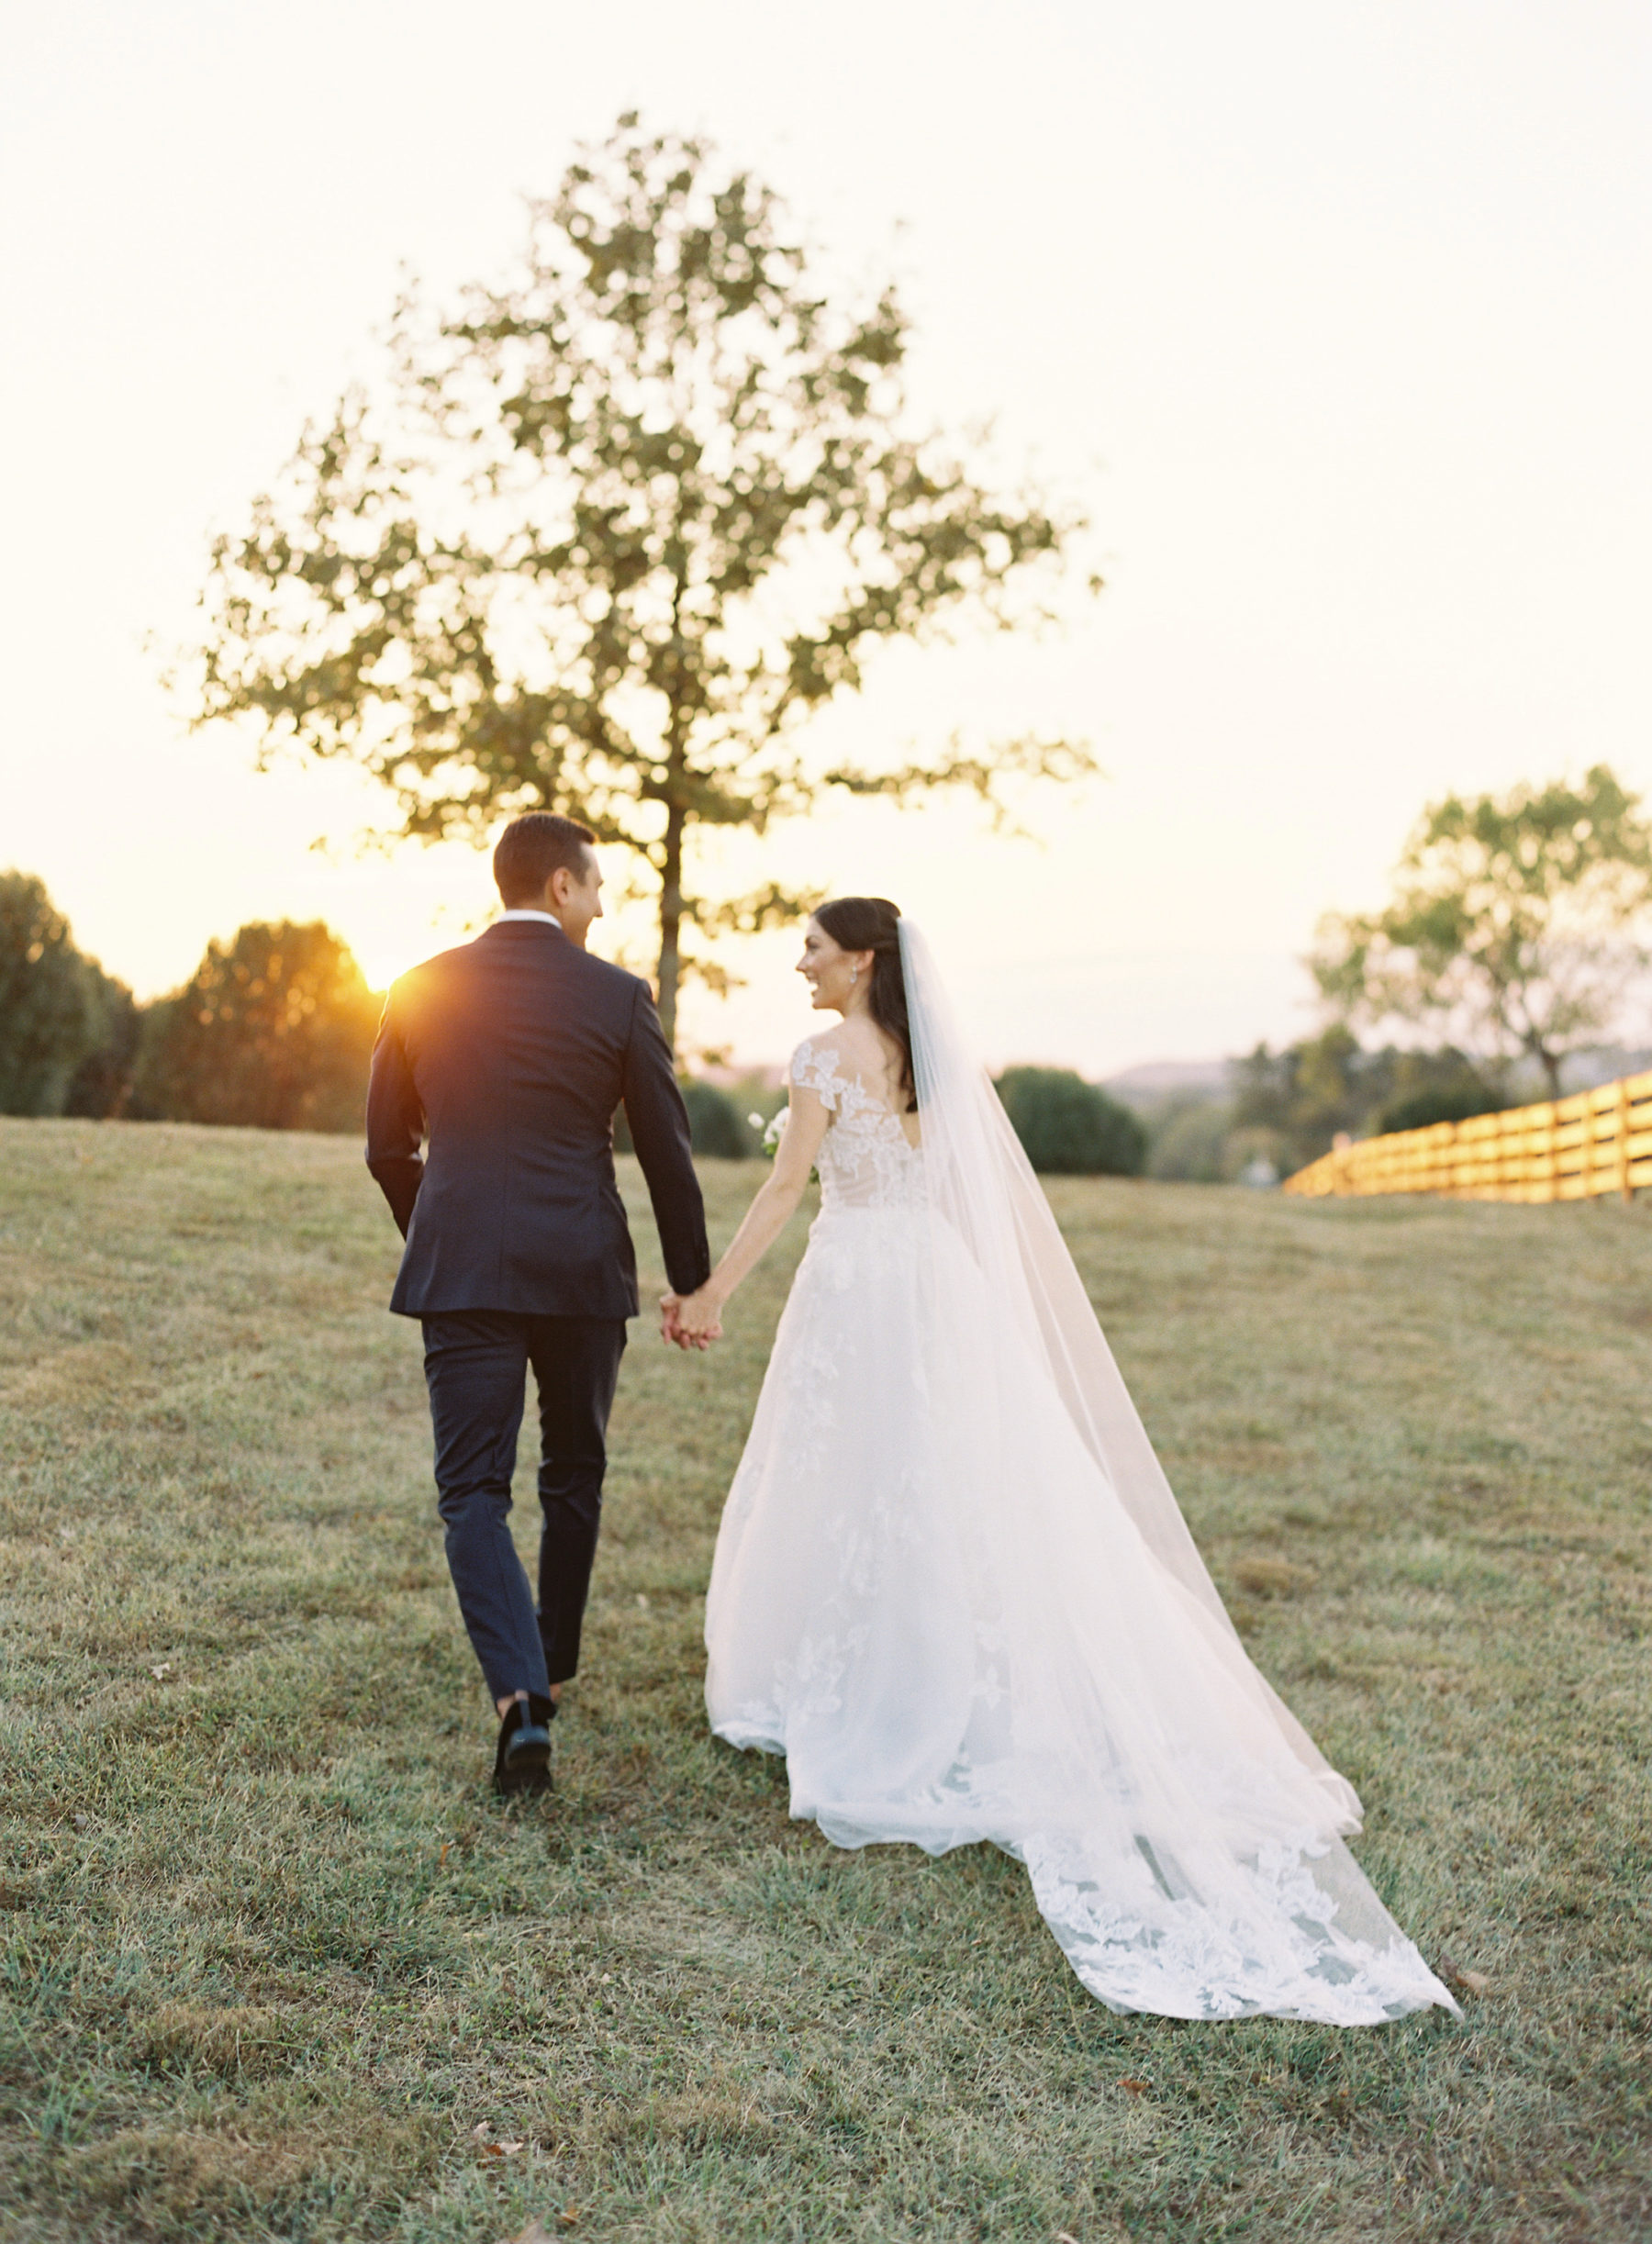 Golden hour wedding photos at Autumn Crest Farm captured by Nathan Westerfield